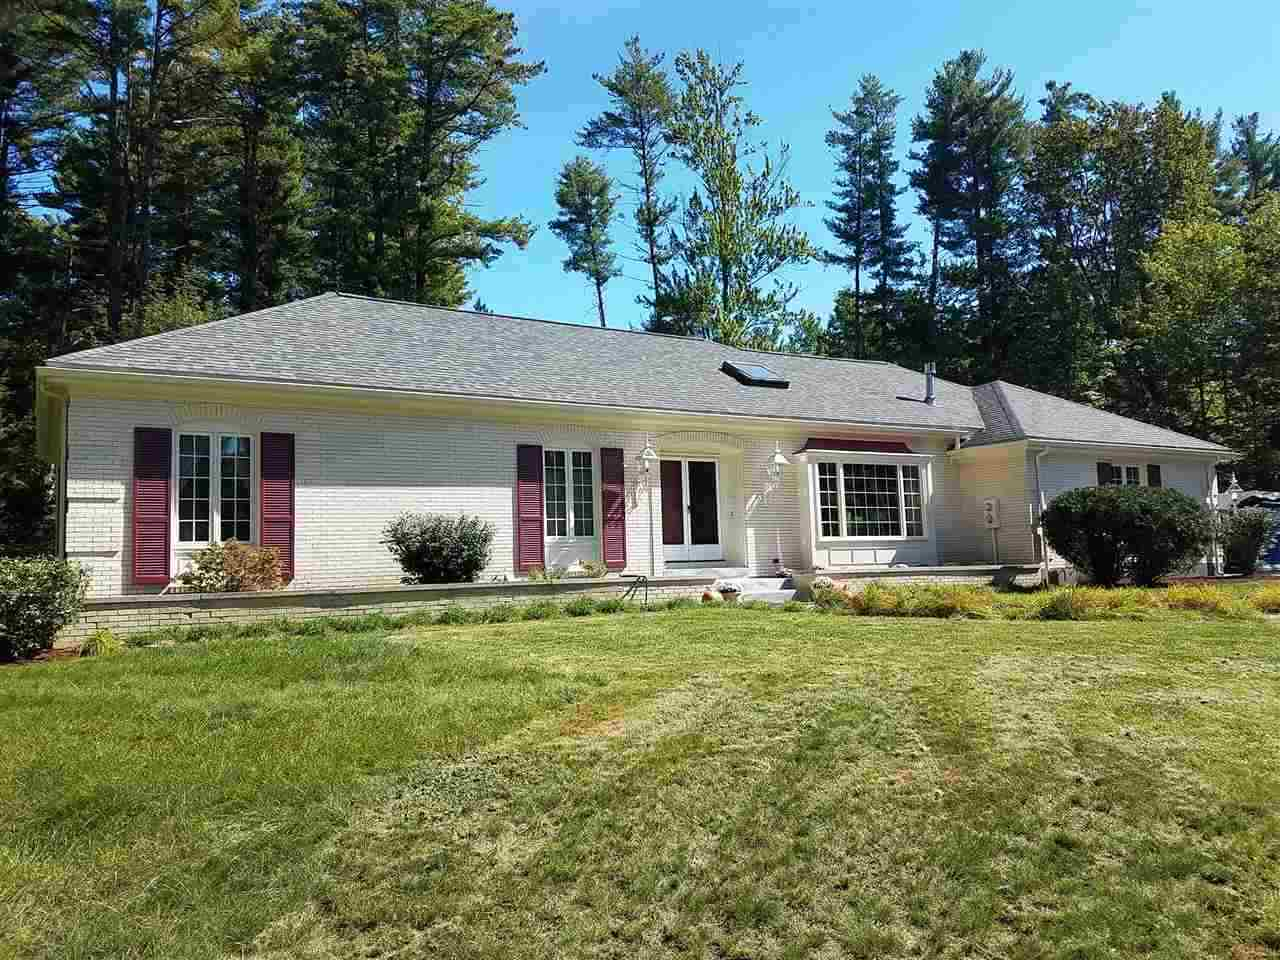 Photo of 14 Shaw Drive Bedford NH 03110